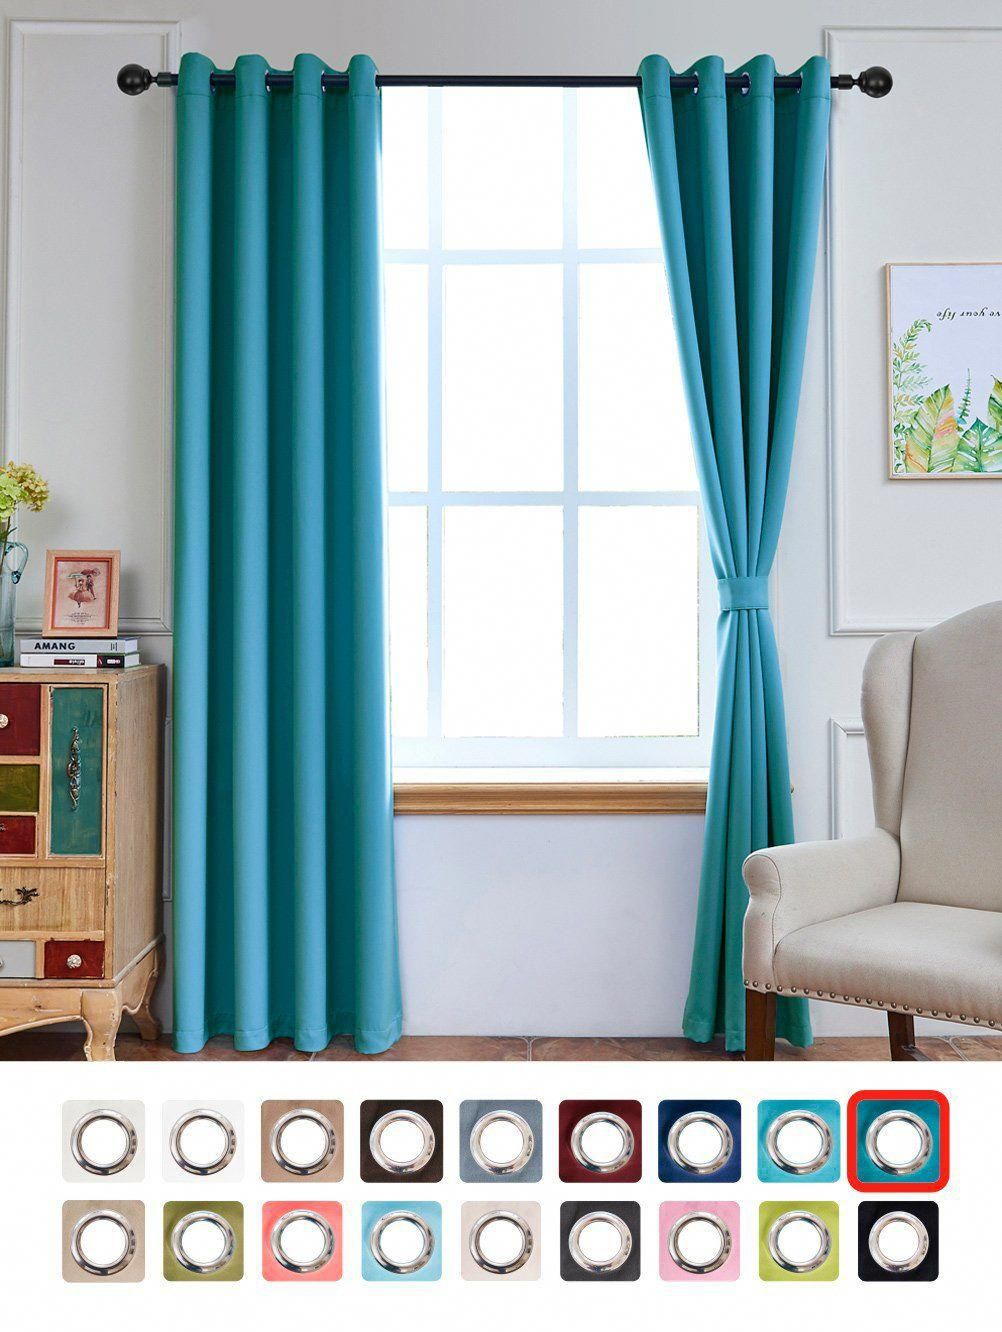 Yakamok Light Blocking Darkening Thermal Insulated Blackout Curtains Solid Grommet Top Window Draperies D Panels For Bedroom Living Room 52x84 Inch